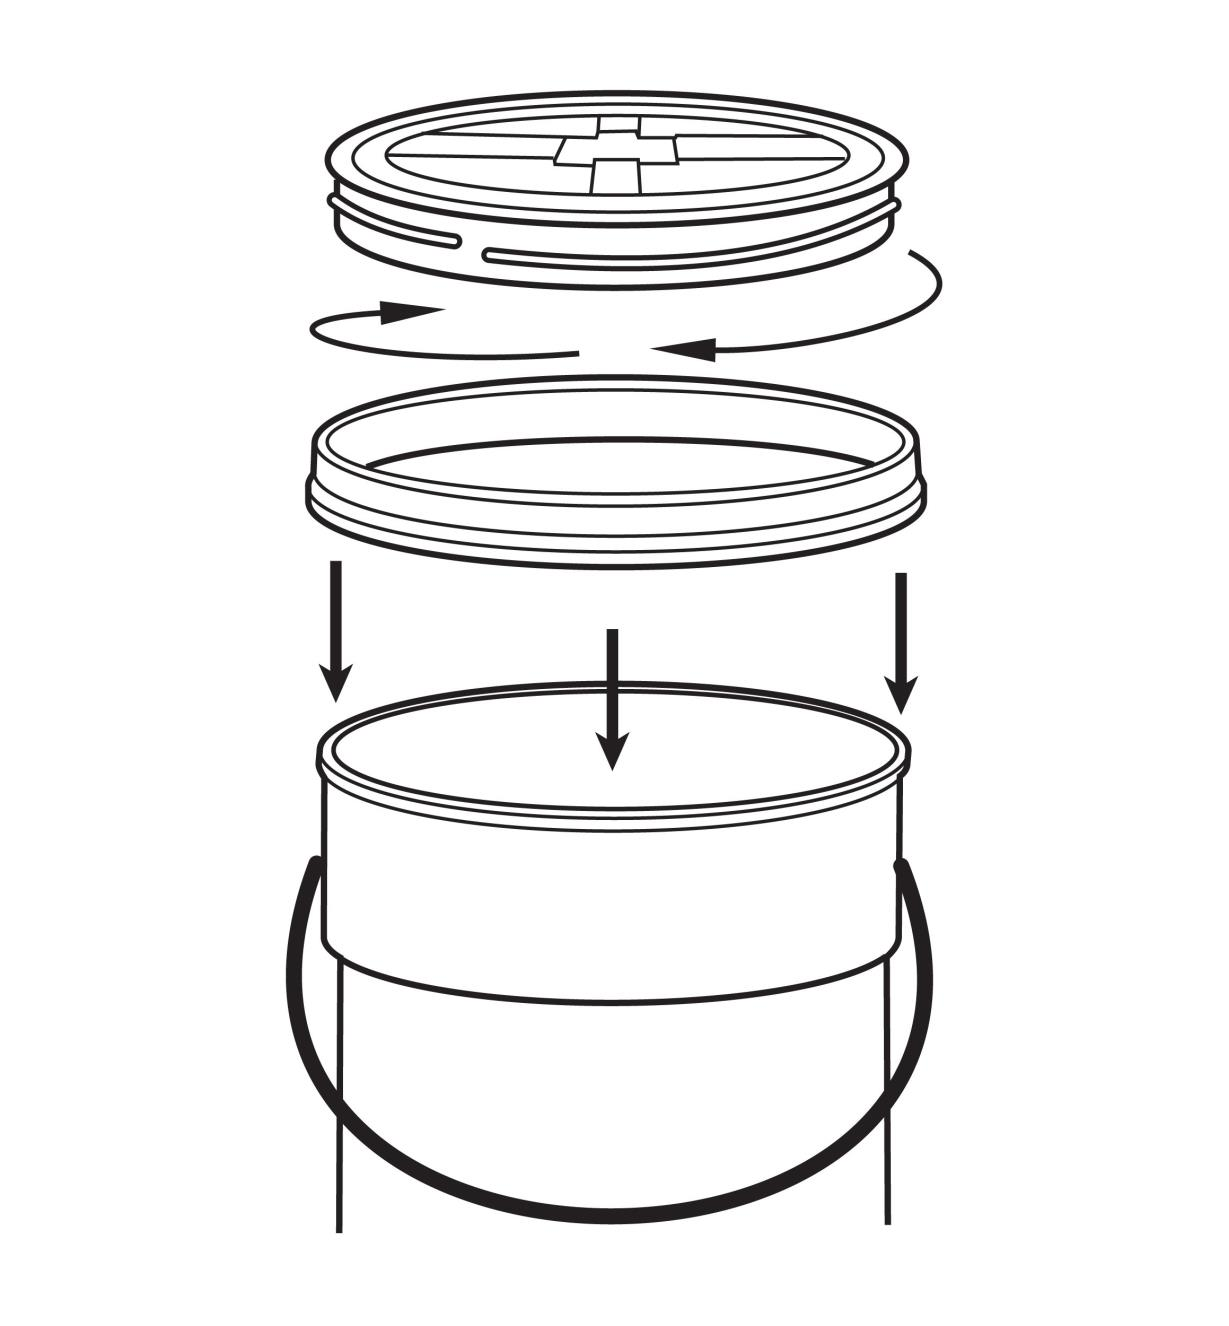 Illustration shows how the Gamma Seal lid attaches to a pail